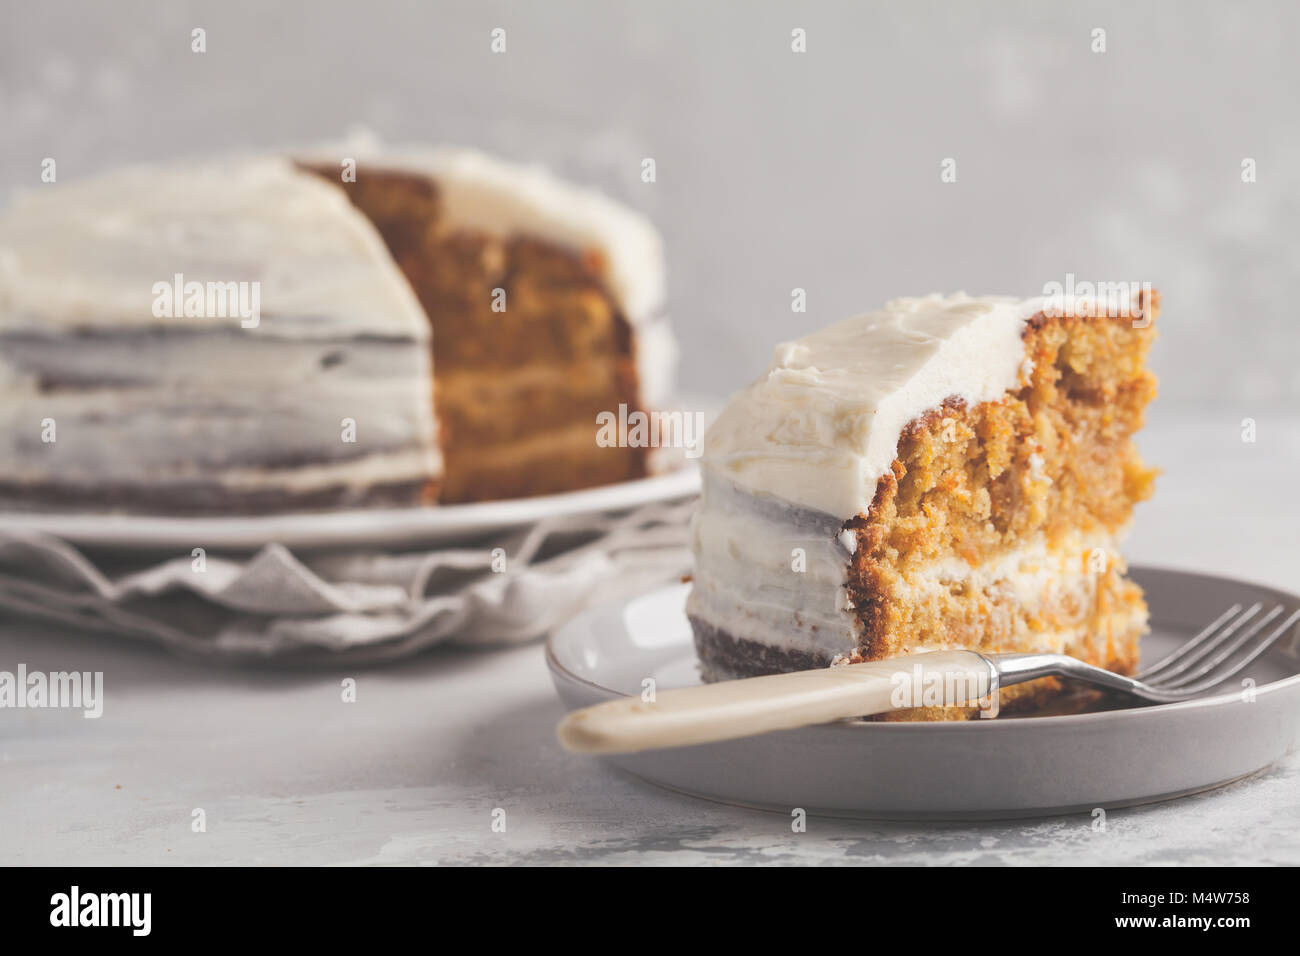 Carrot homemade cake with white cream on a gray background. Festive dessert concept. - Stock Image